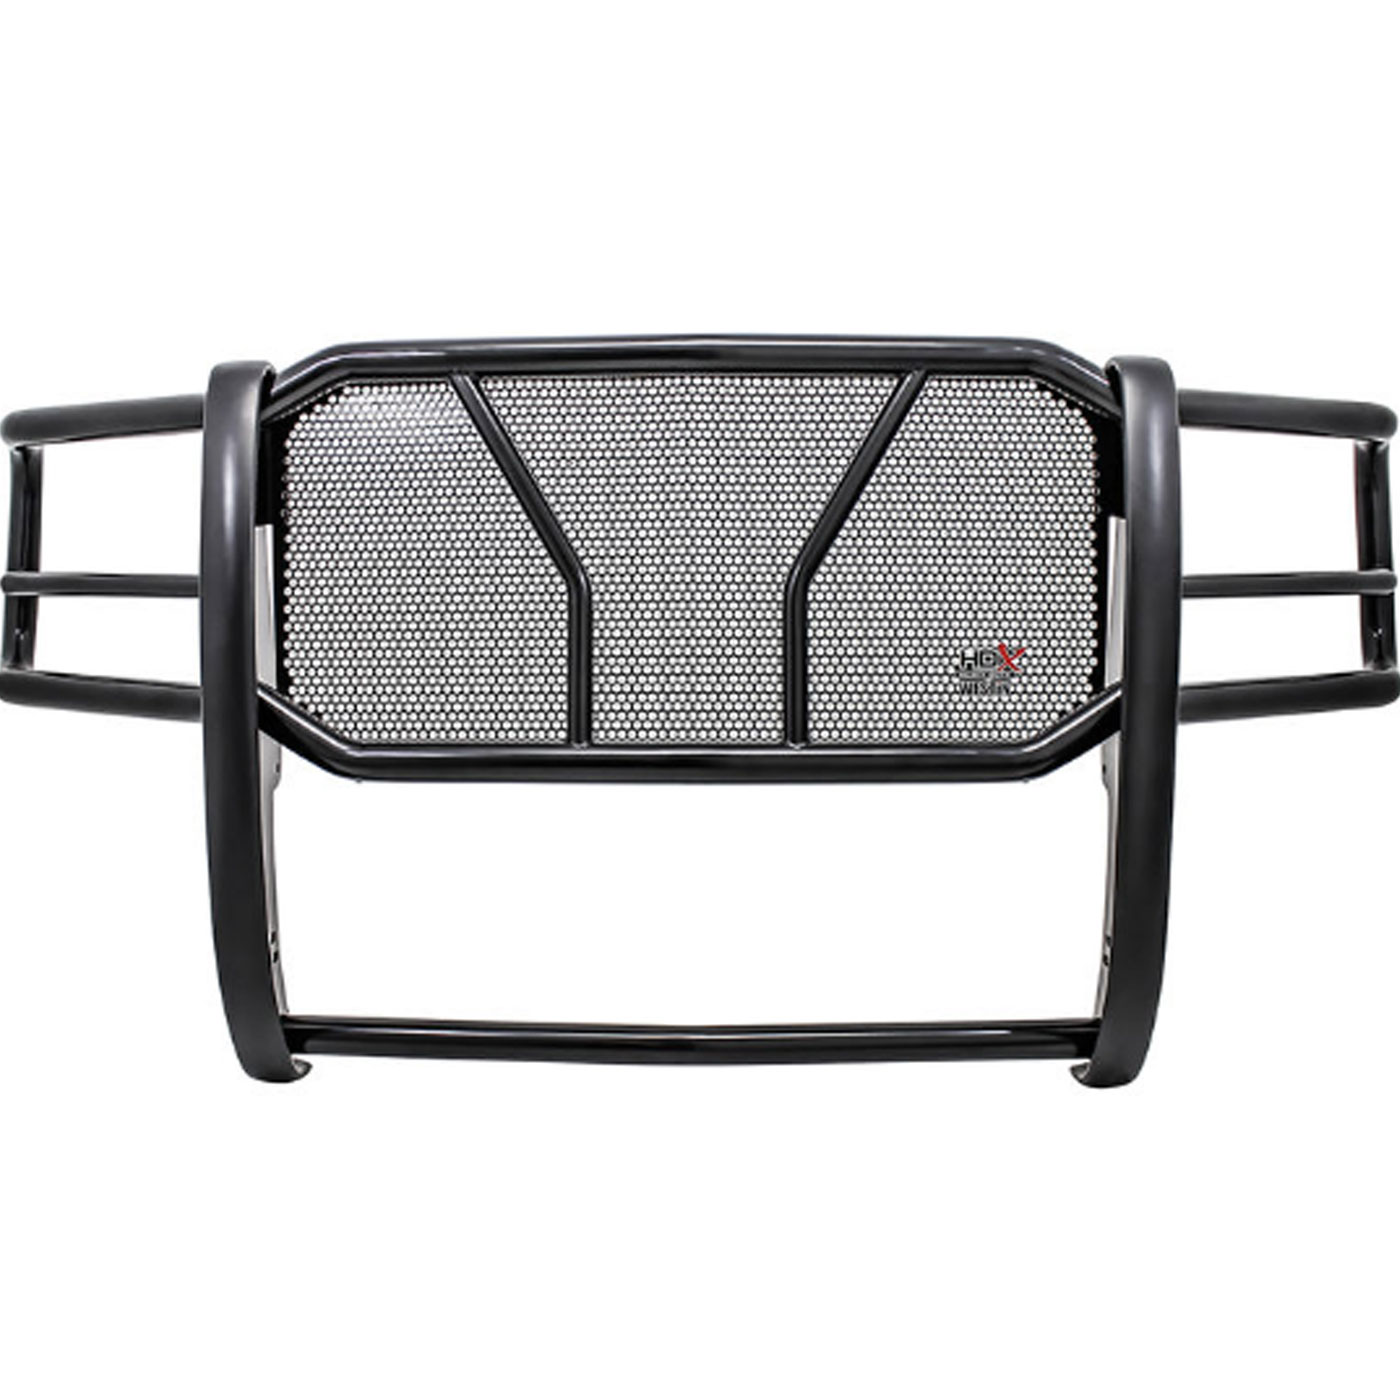 Grill Guards & Bull Bars